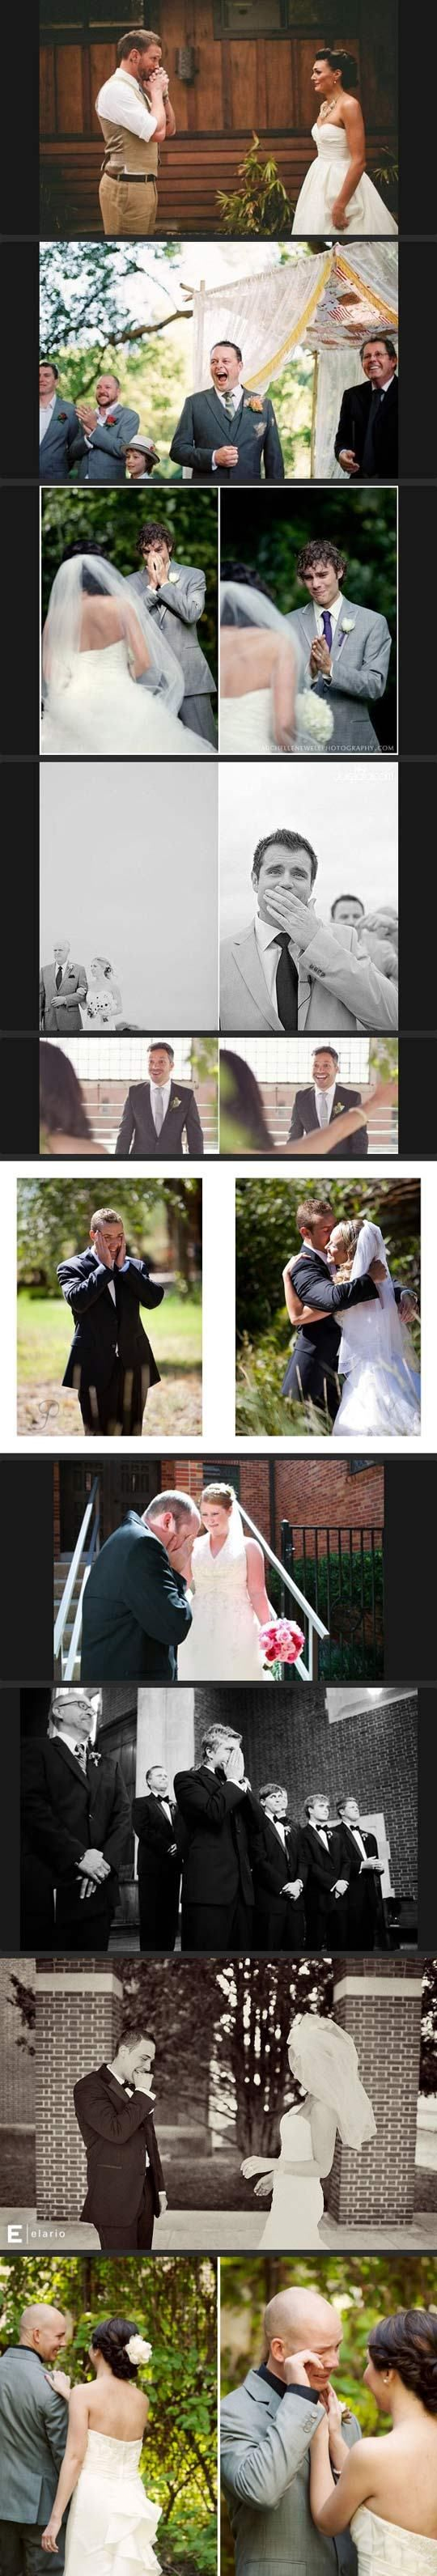 Grooms Seeing Their Brides On Their Wedding Days For The First Time.. the best part!!!!!: First Time, Wedding Ideas, Wedding Day, Wedding Photo, Bride, Future Wedding, Grooms, Groom Reaction